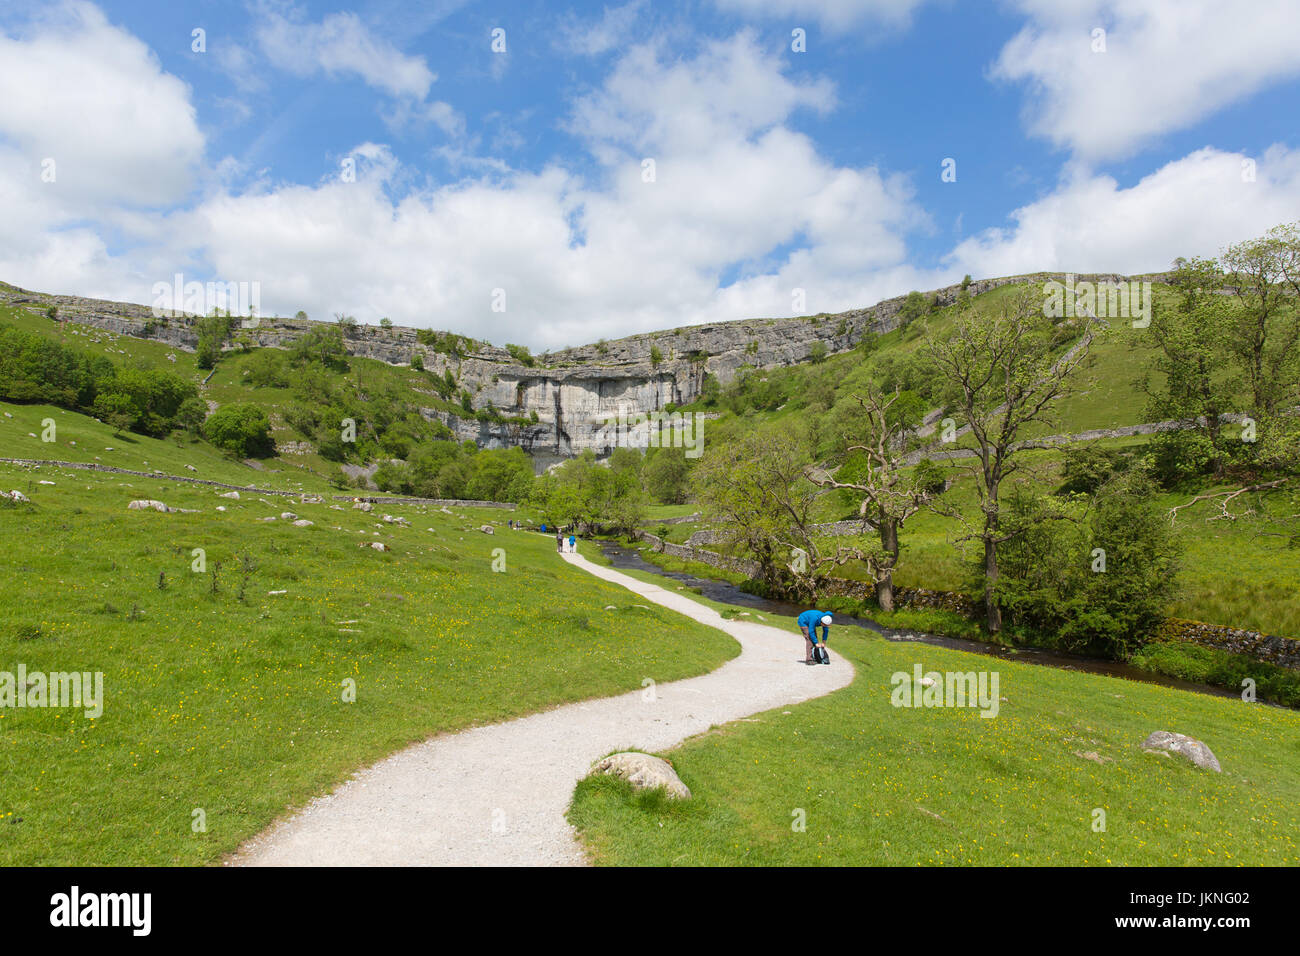 Malham Cove Yorkshire Dales National Park England UK tourist attraction - Stock Image